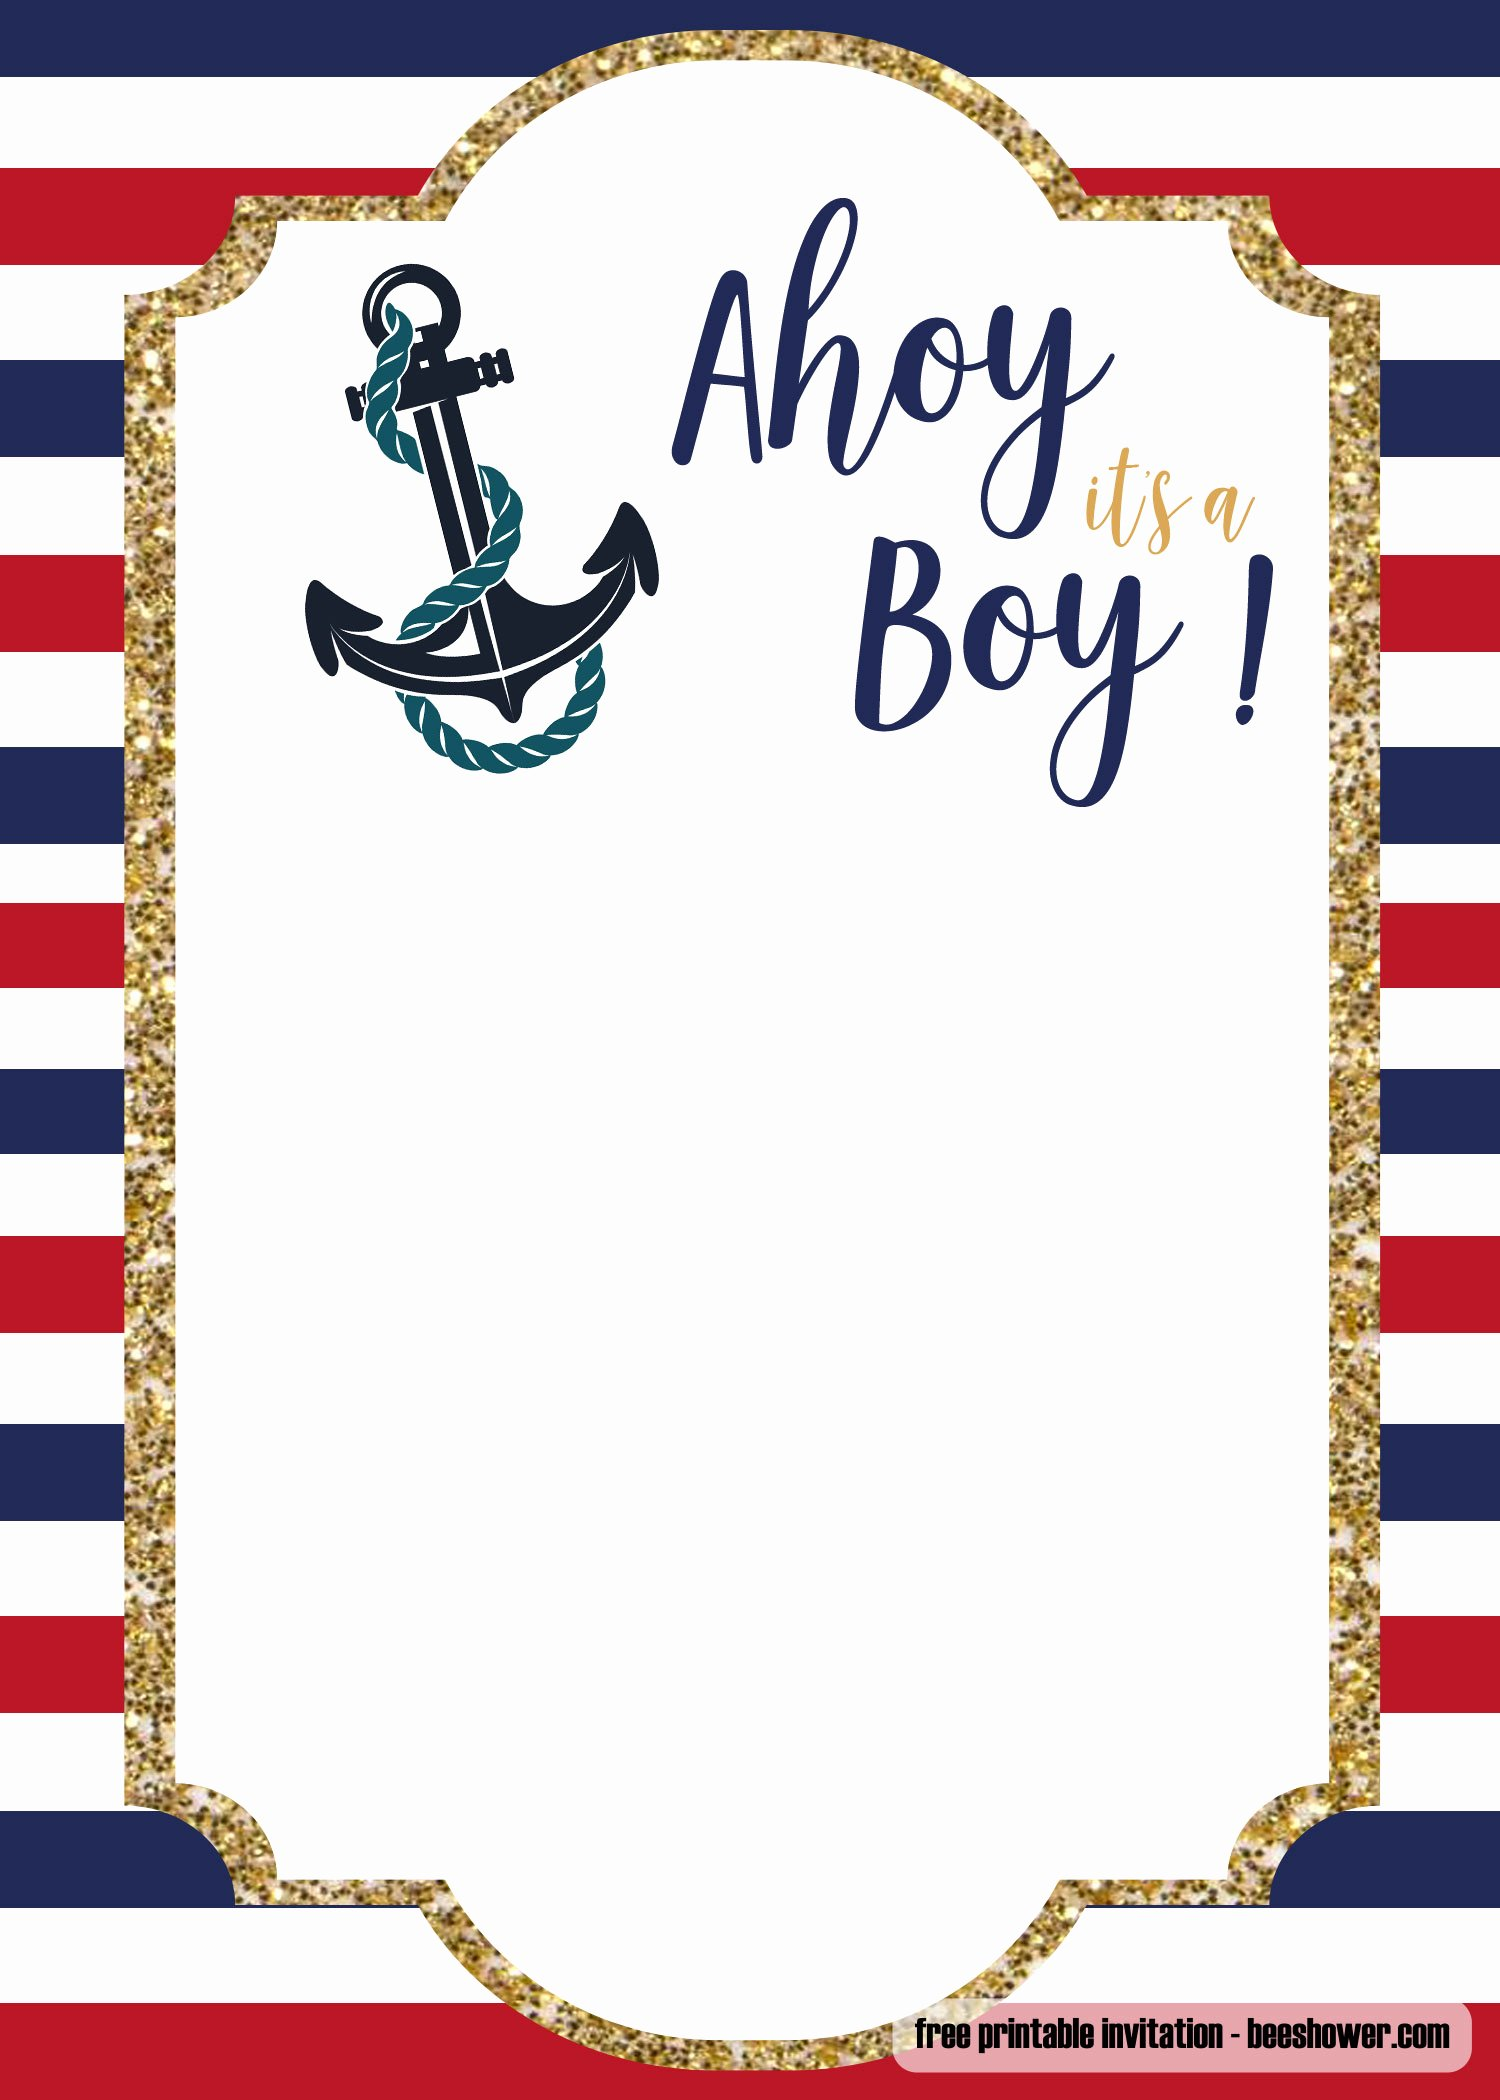 Free Baby Invitation Template Unique Free Nautical Baby Shower Invitations Templates